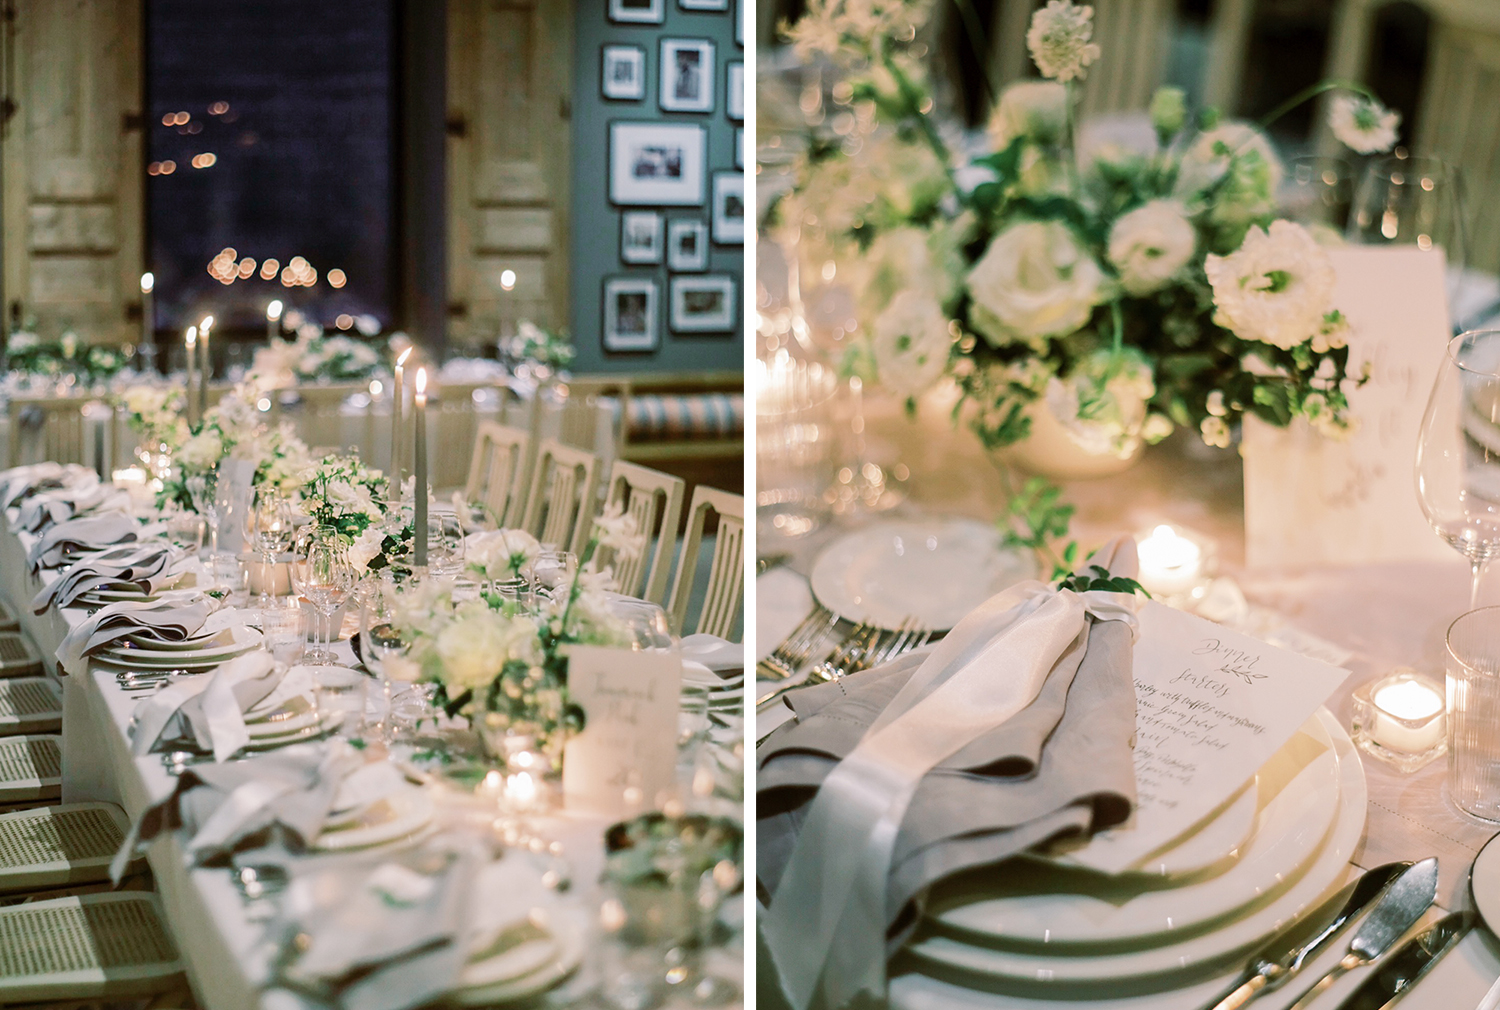 Wedding table decor and flowers at night